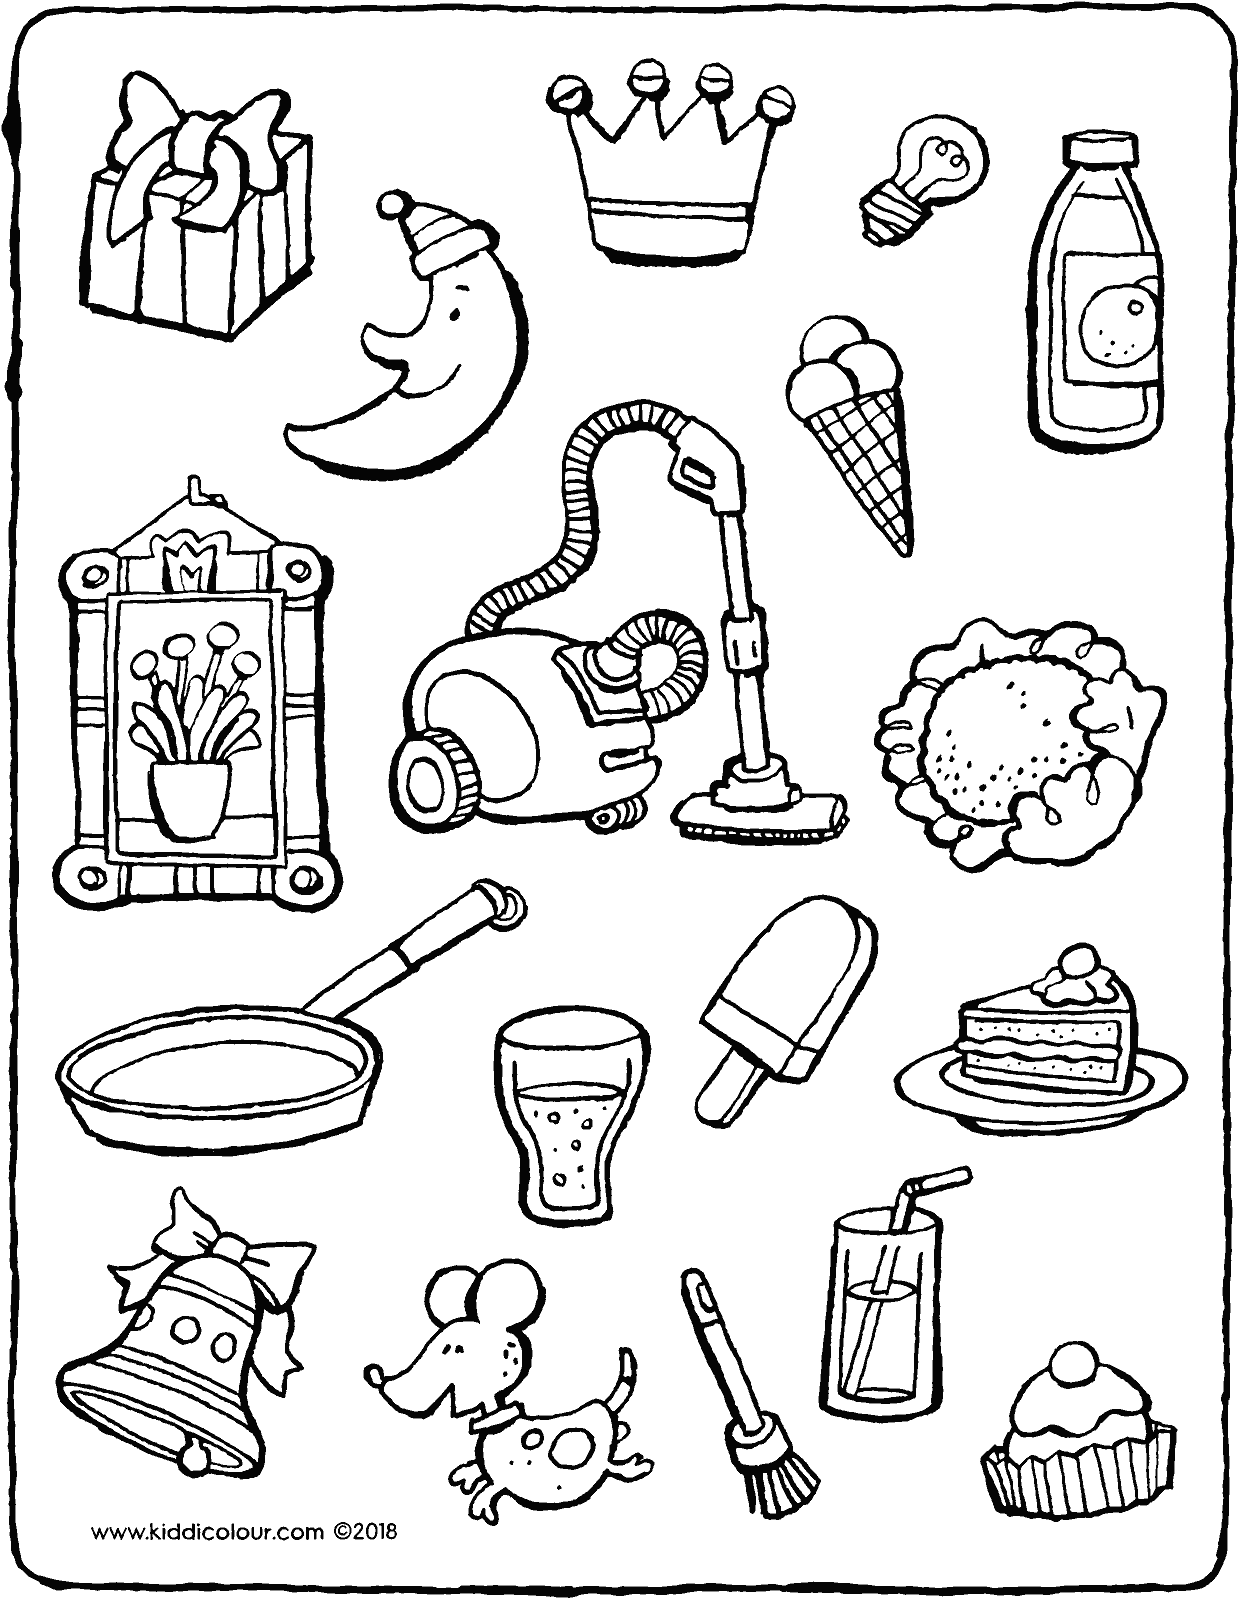 which objects are birthday-related colouring page drawing picture 01V